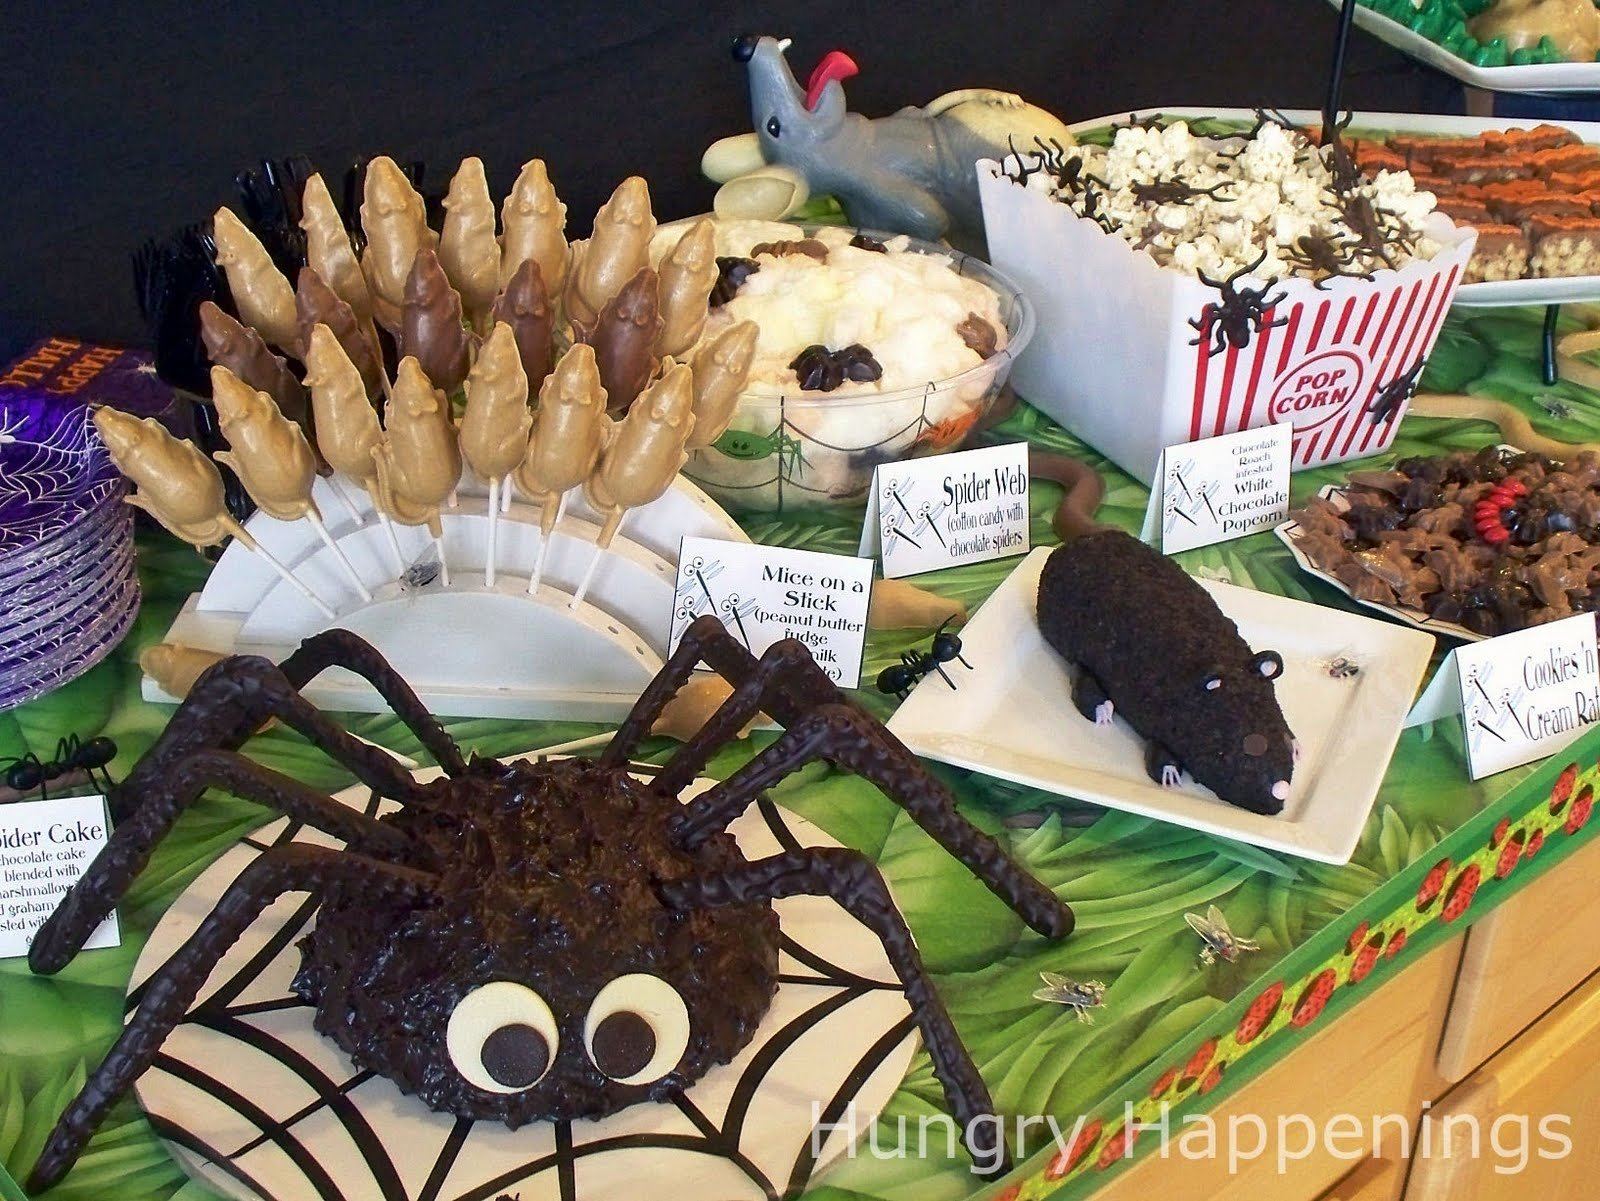 10 Cute Halloween Food Ideas For Parties carnival of the creepy crawlers halloween party theme 2021